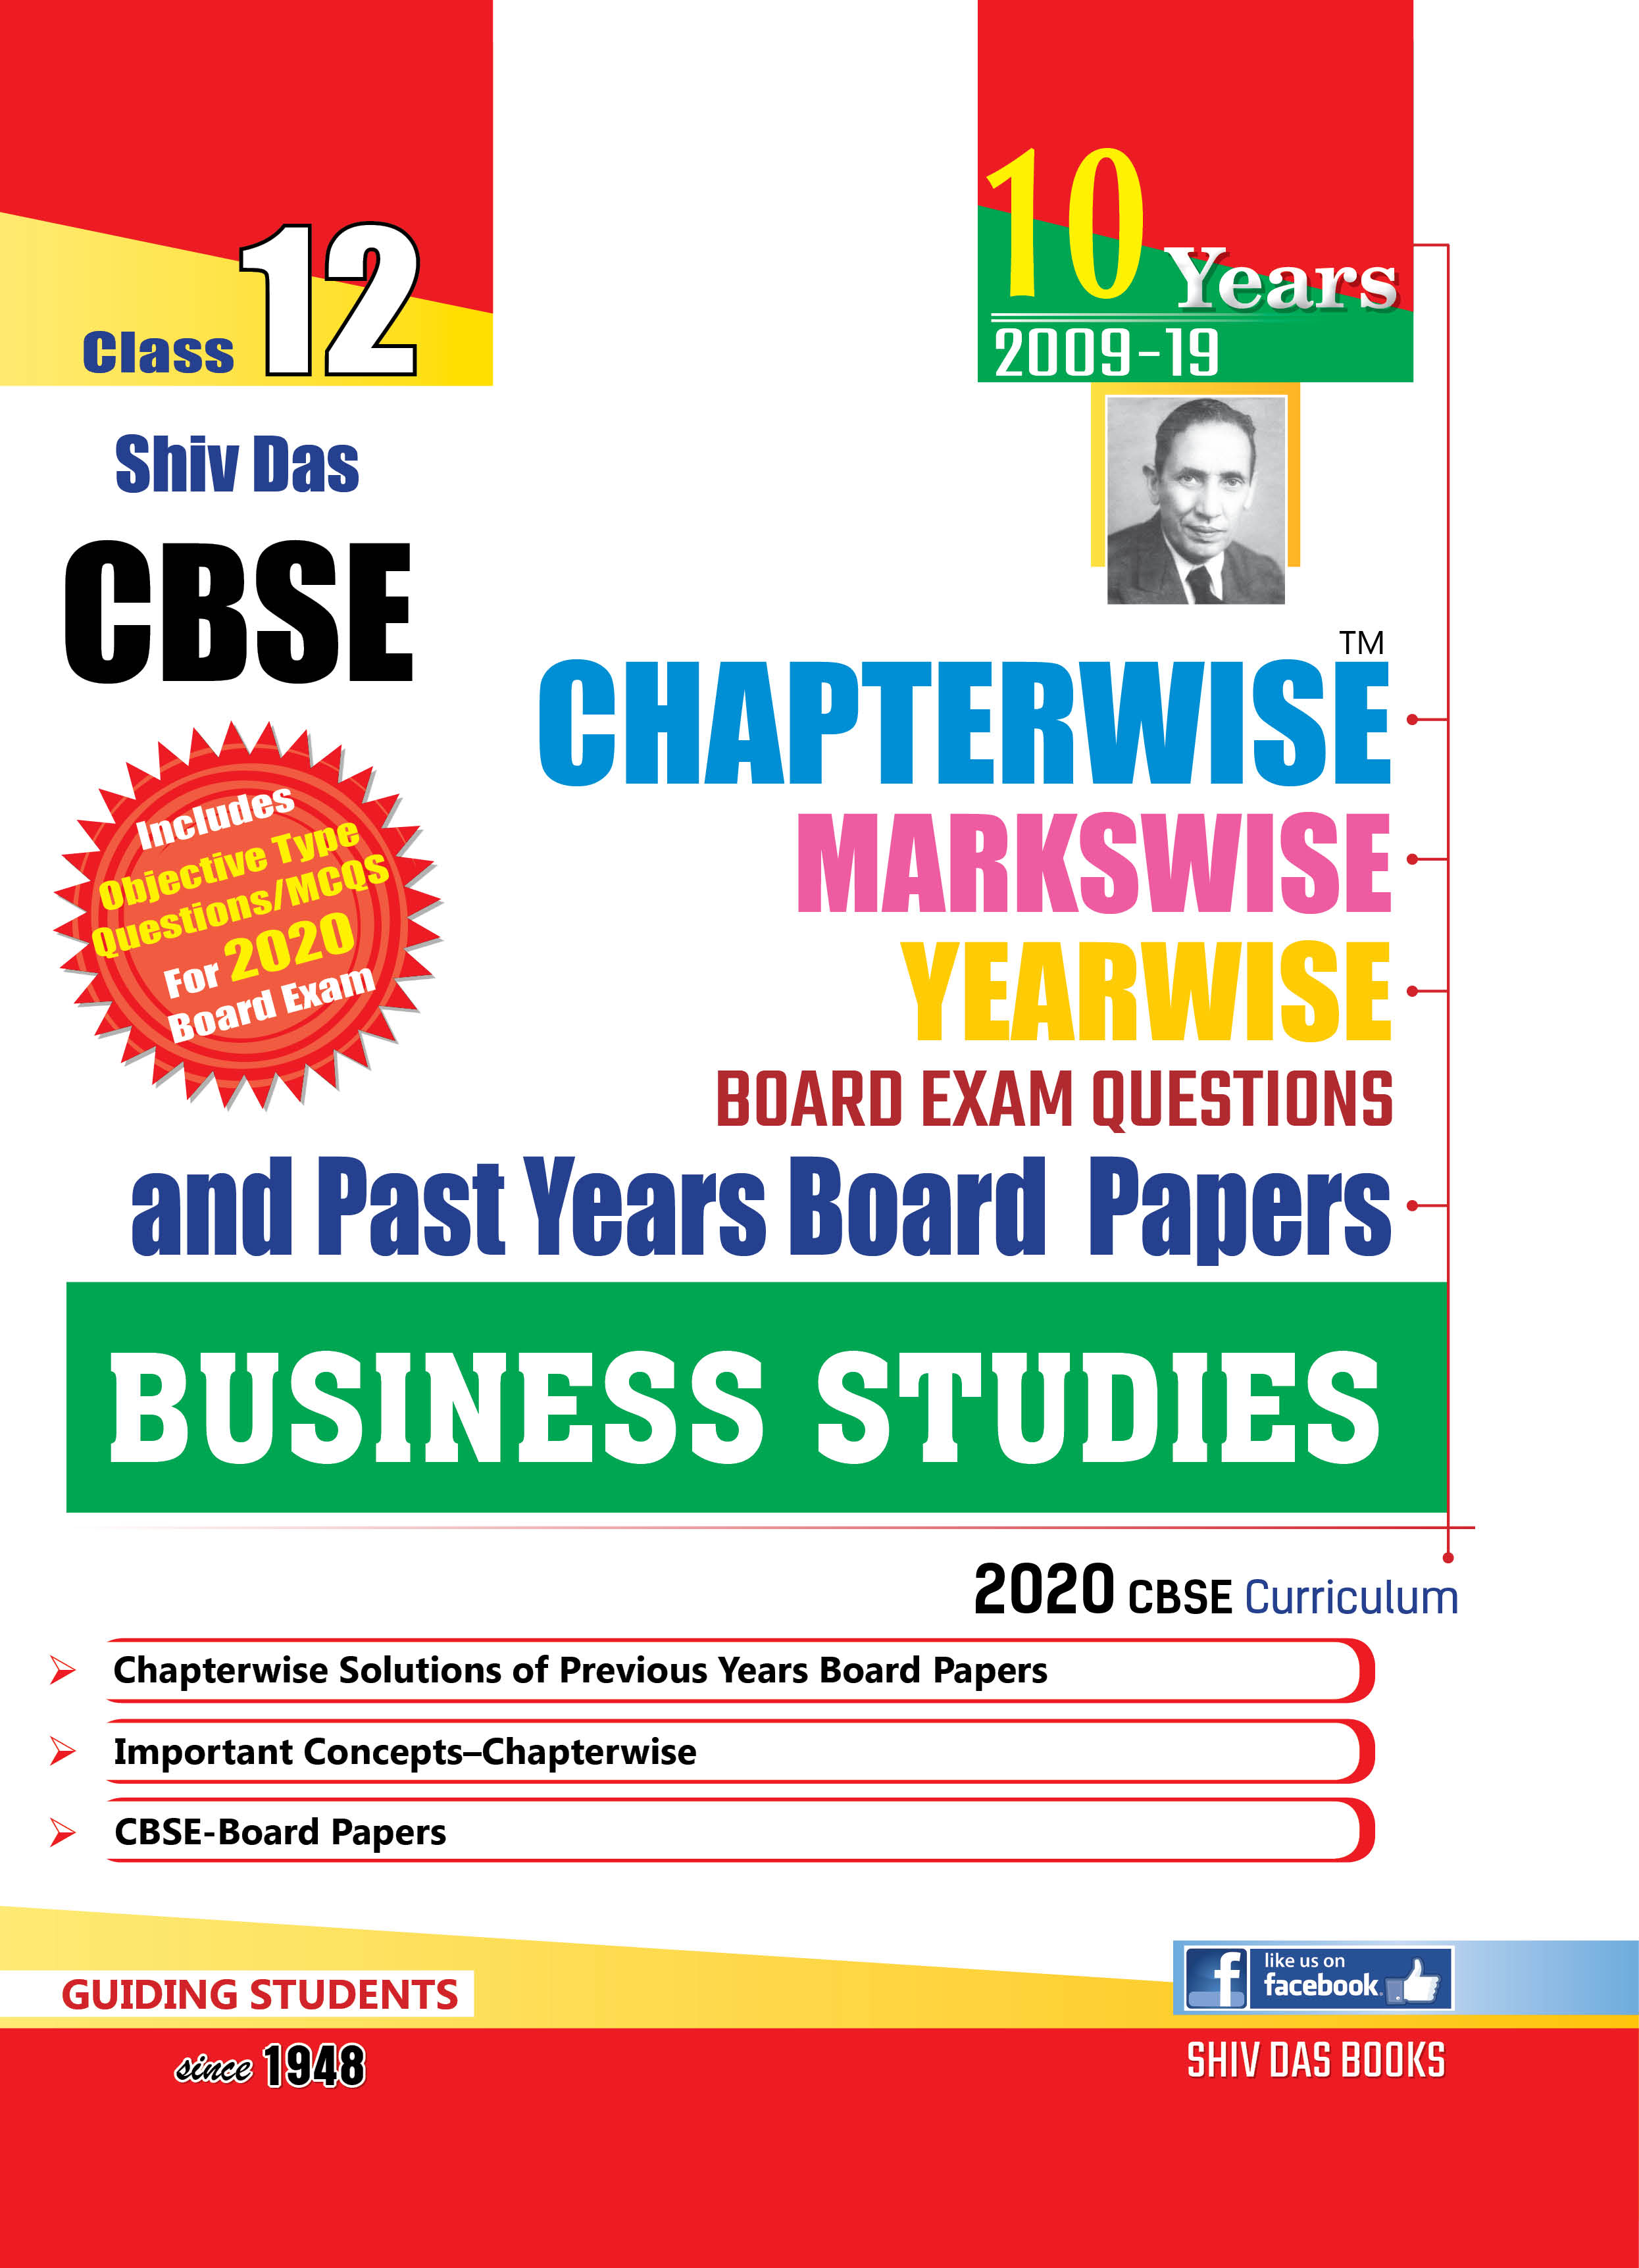 CBSE Chapterwise Markswise Yearwise Board Exam Questions & Past Years Board Papers For Class 12 Business Studies (2020 Board Exam Edition)